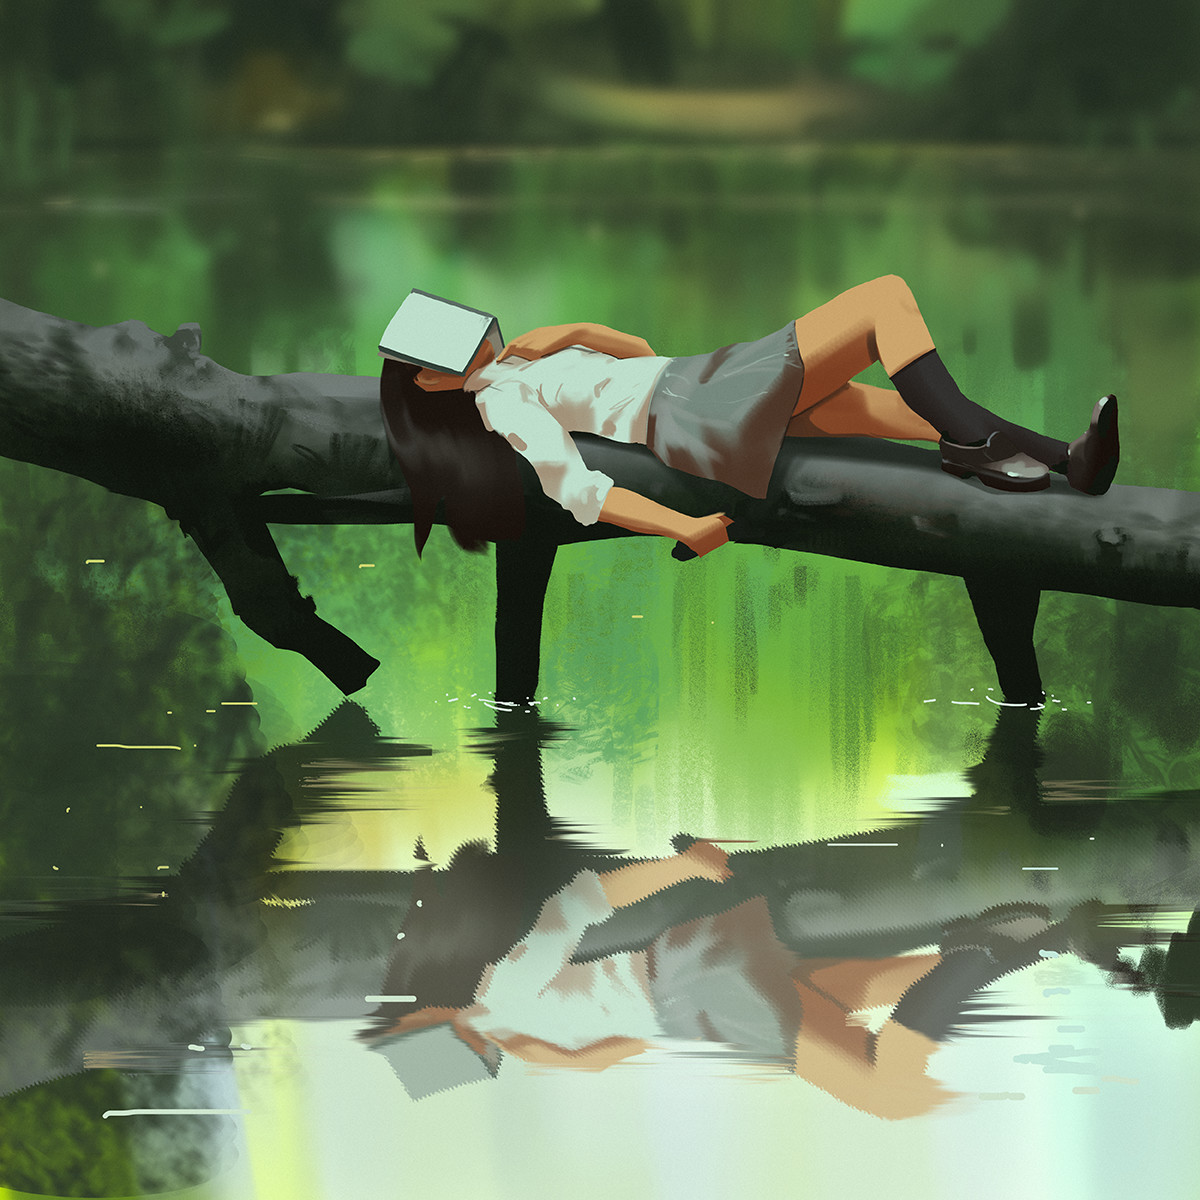 Sketch collection 27 2018 Lazy reading, Atey Ghailan_02